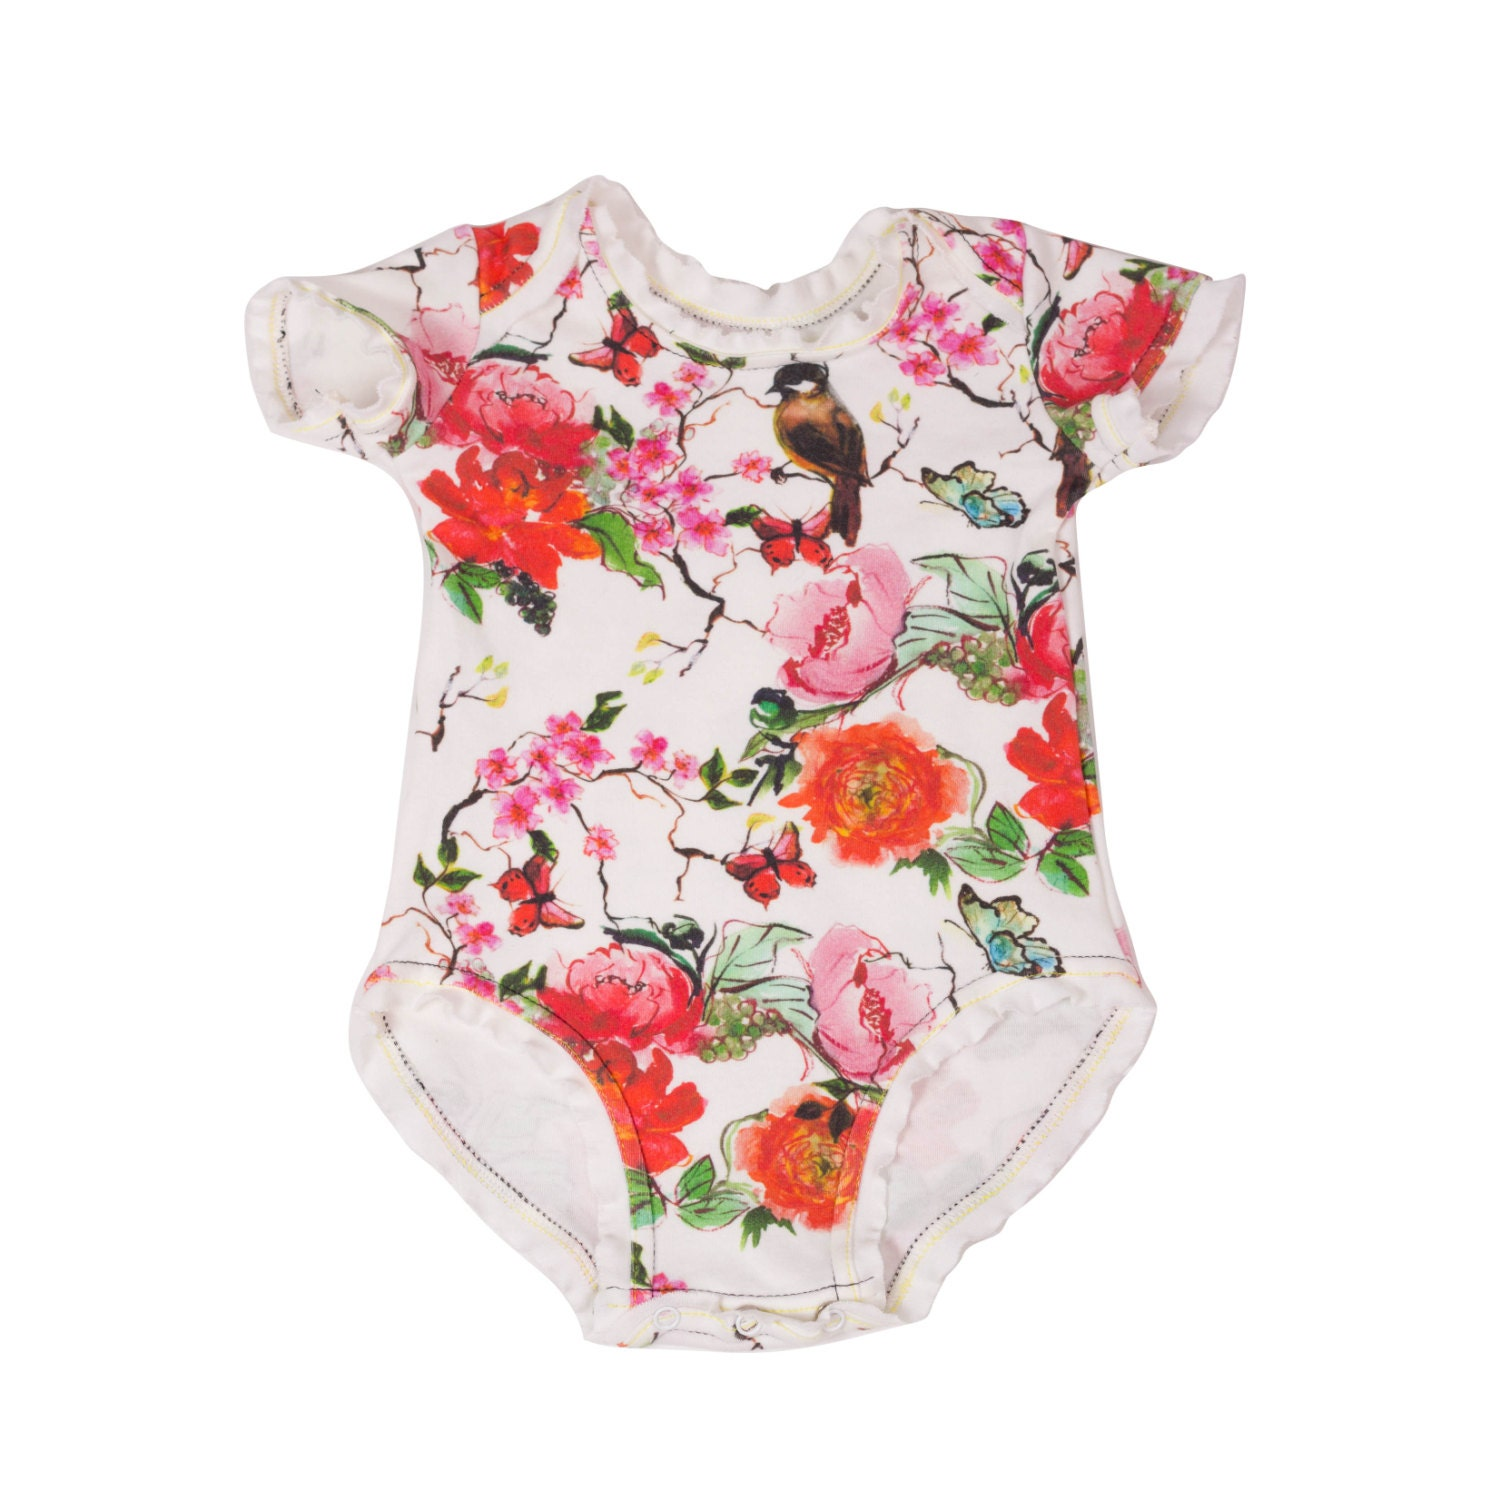 Sume organic preemie clothes story. Sume baby clothes for premature and low birthweight babies are special because we take into account the particular needs of the most smallest of babies and how they are clothed when developing the clothes.